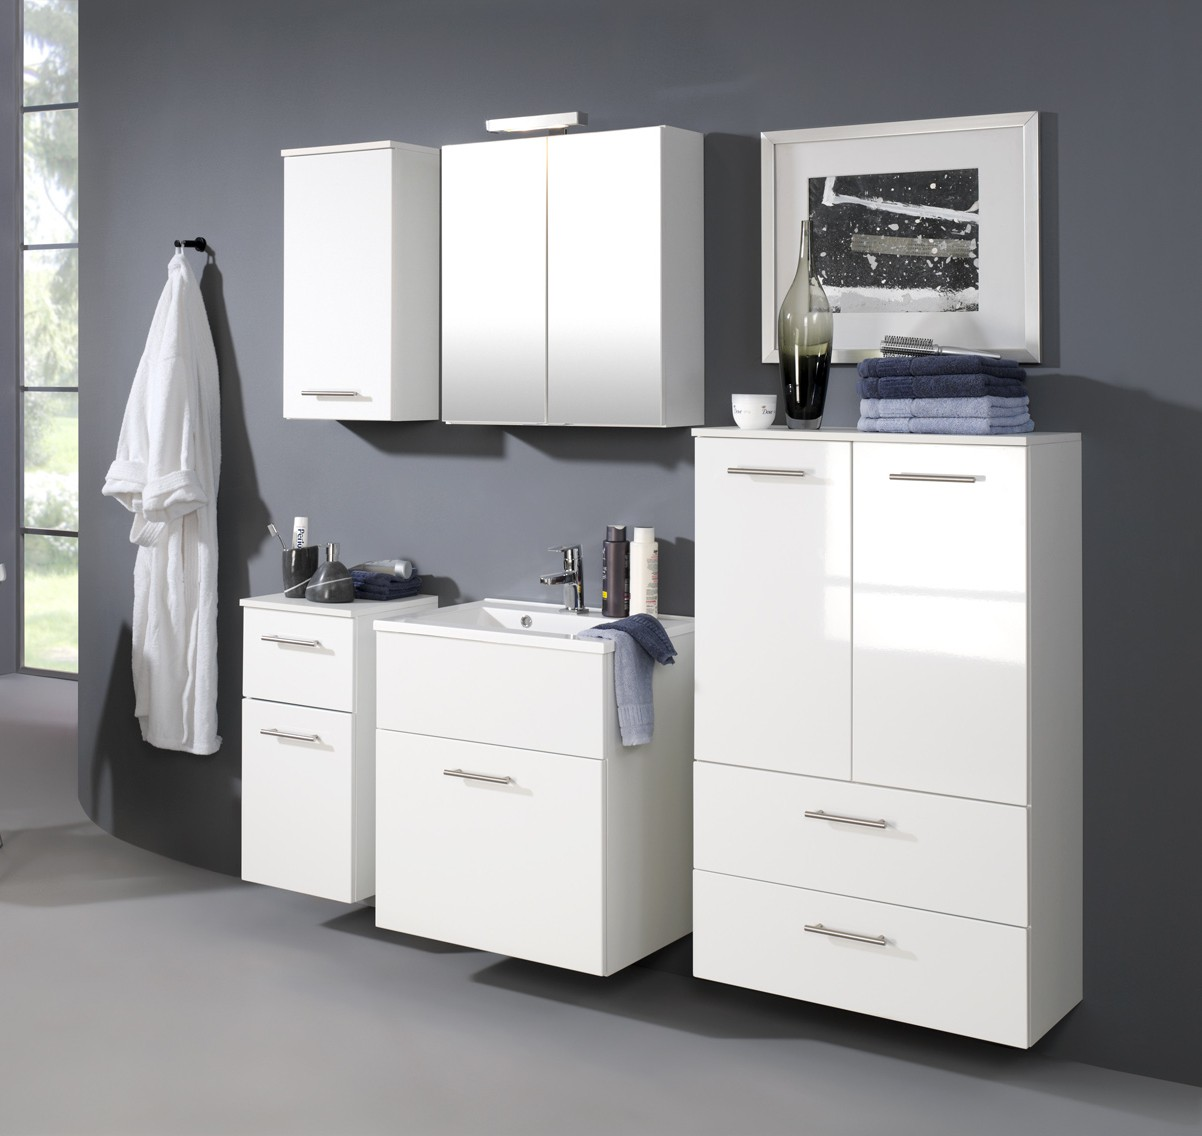 bad midischrank blanco 2 t rig 2 schubladen 70 cm breit hochglanz wei bad blanco. Black Bedroom Furniture Sets. Home Design Ideas